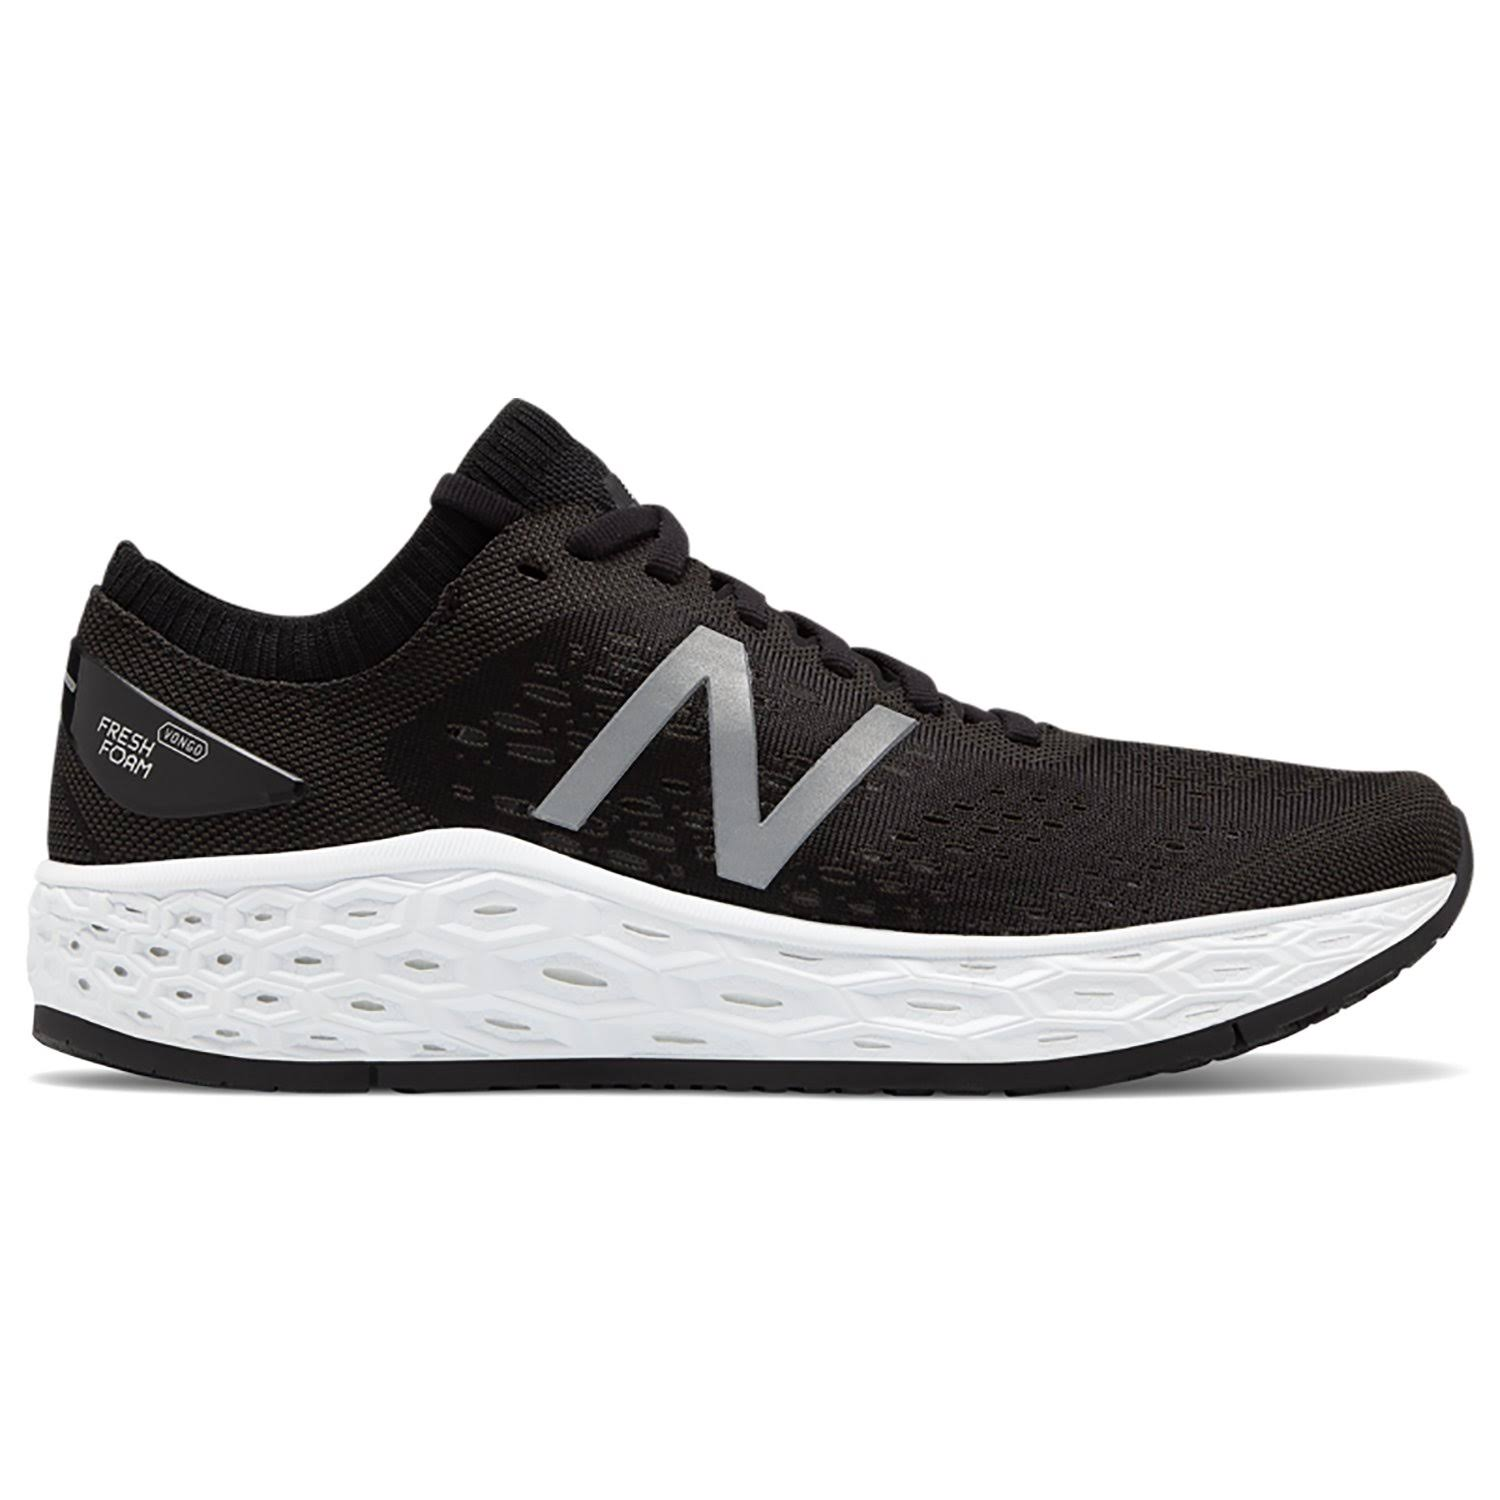 New Balance Fresh Foam Vongo v4 9 Women's Black